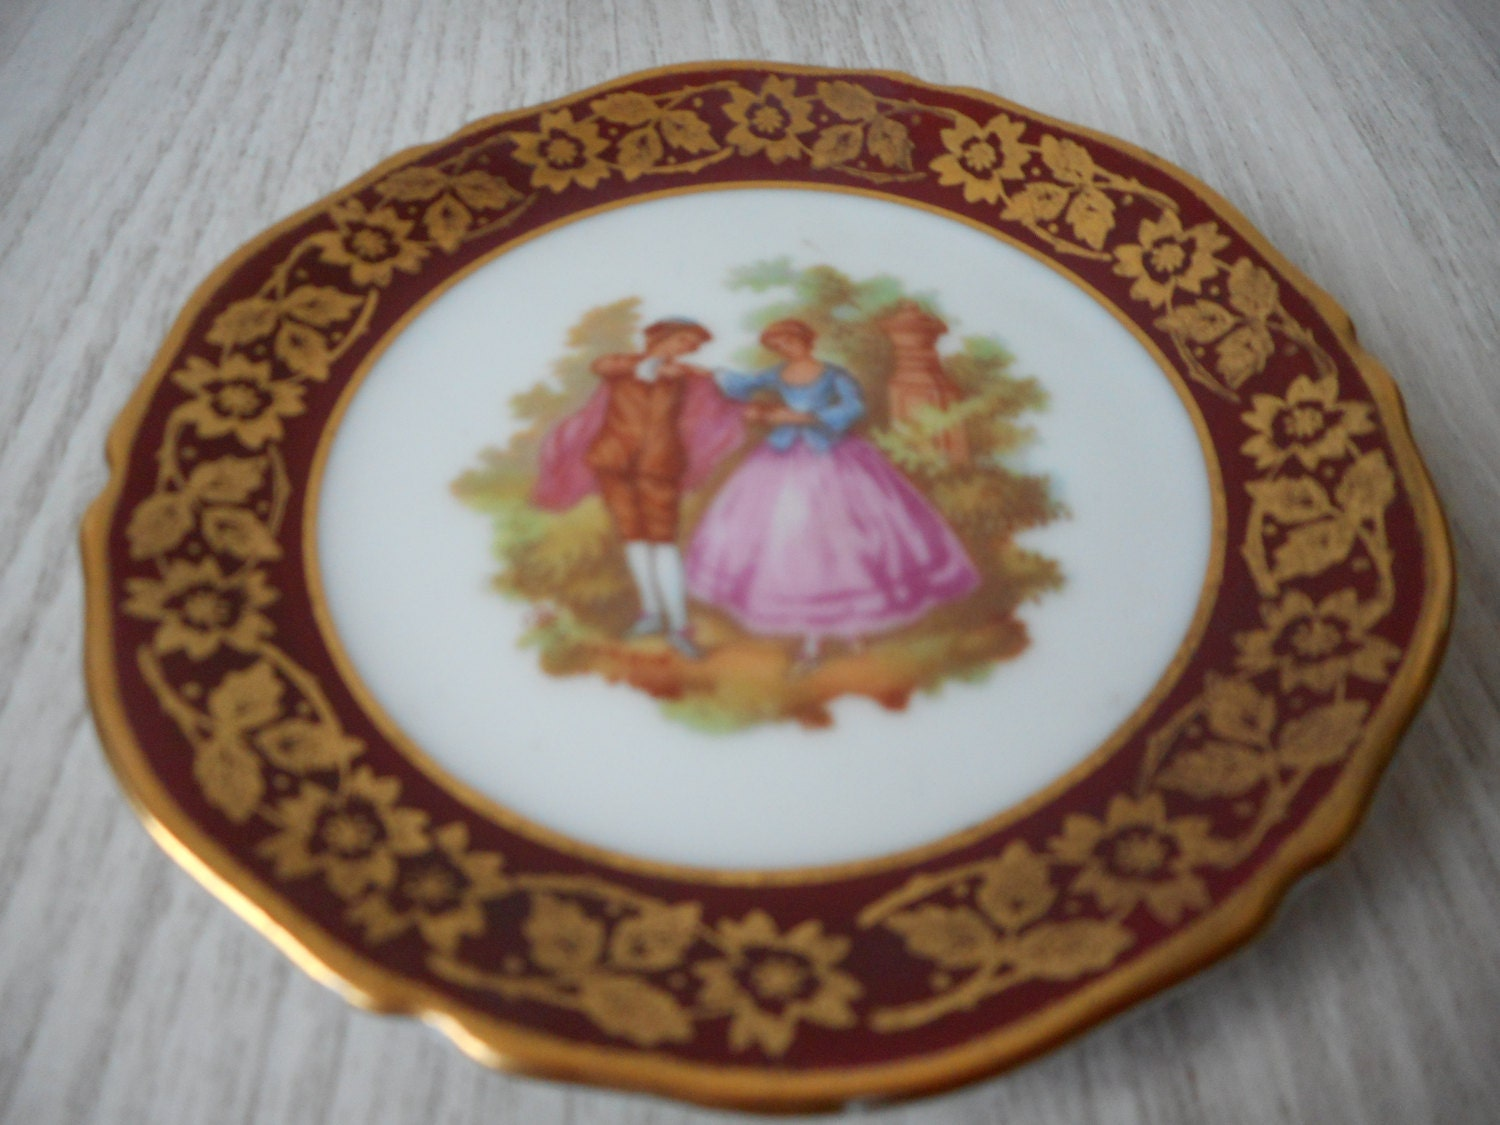 vintage limoges porcelain small miniature decorative plate red. Black Bedroom Furniture Sets. Home Design Ideas